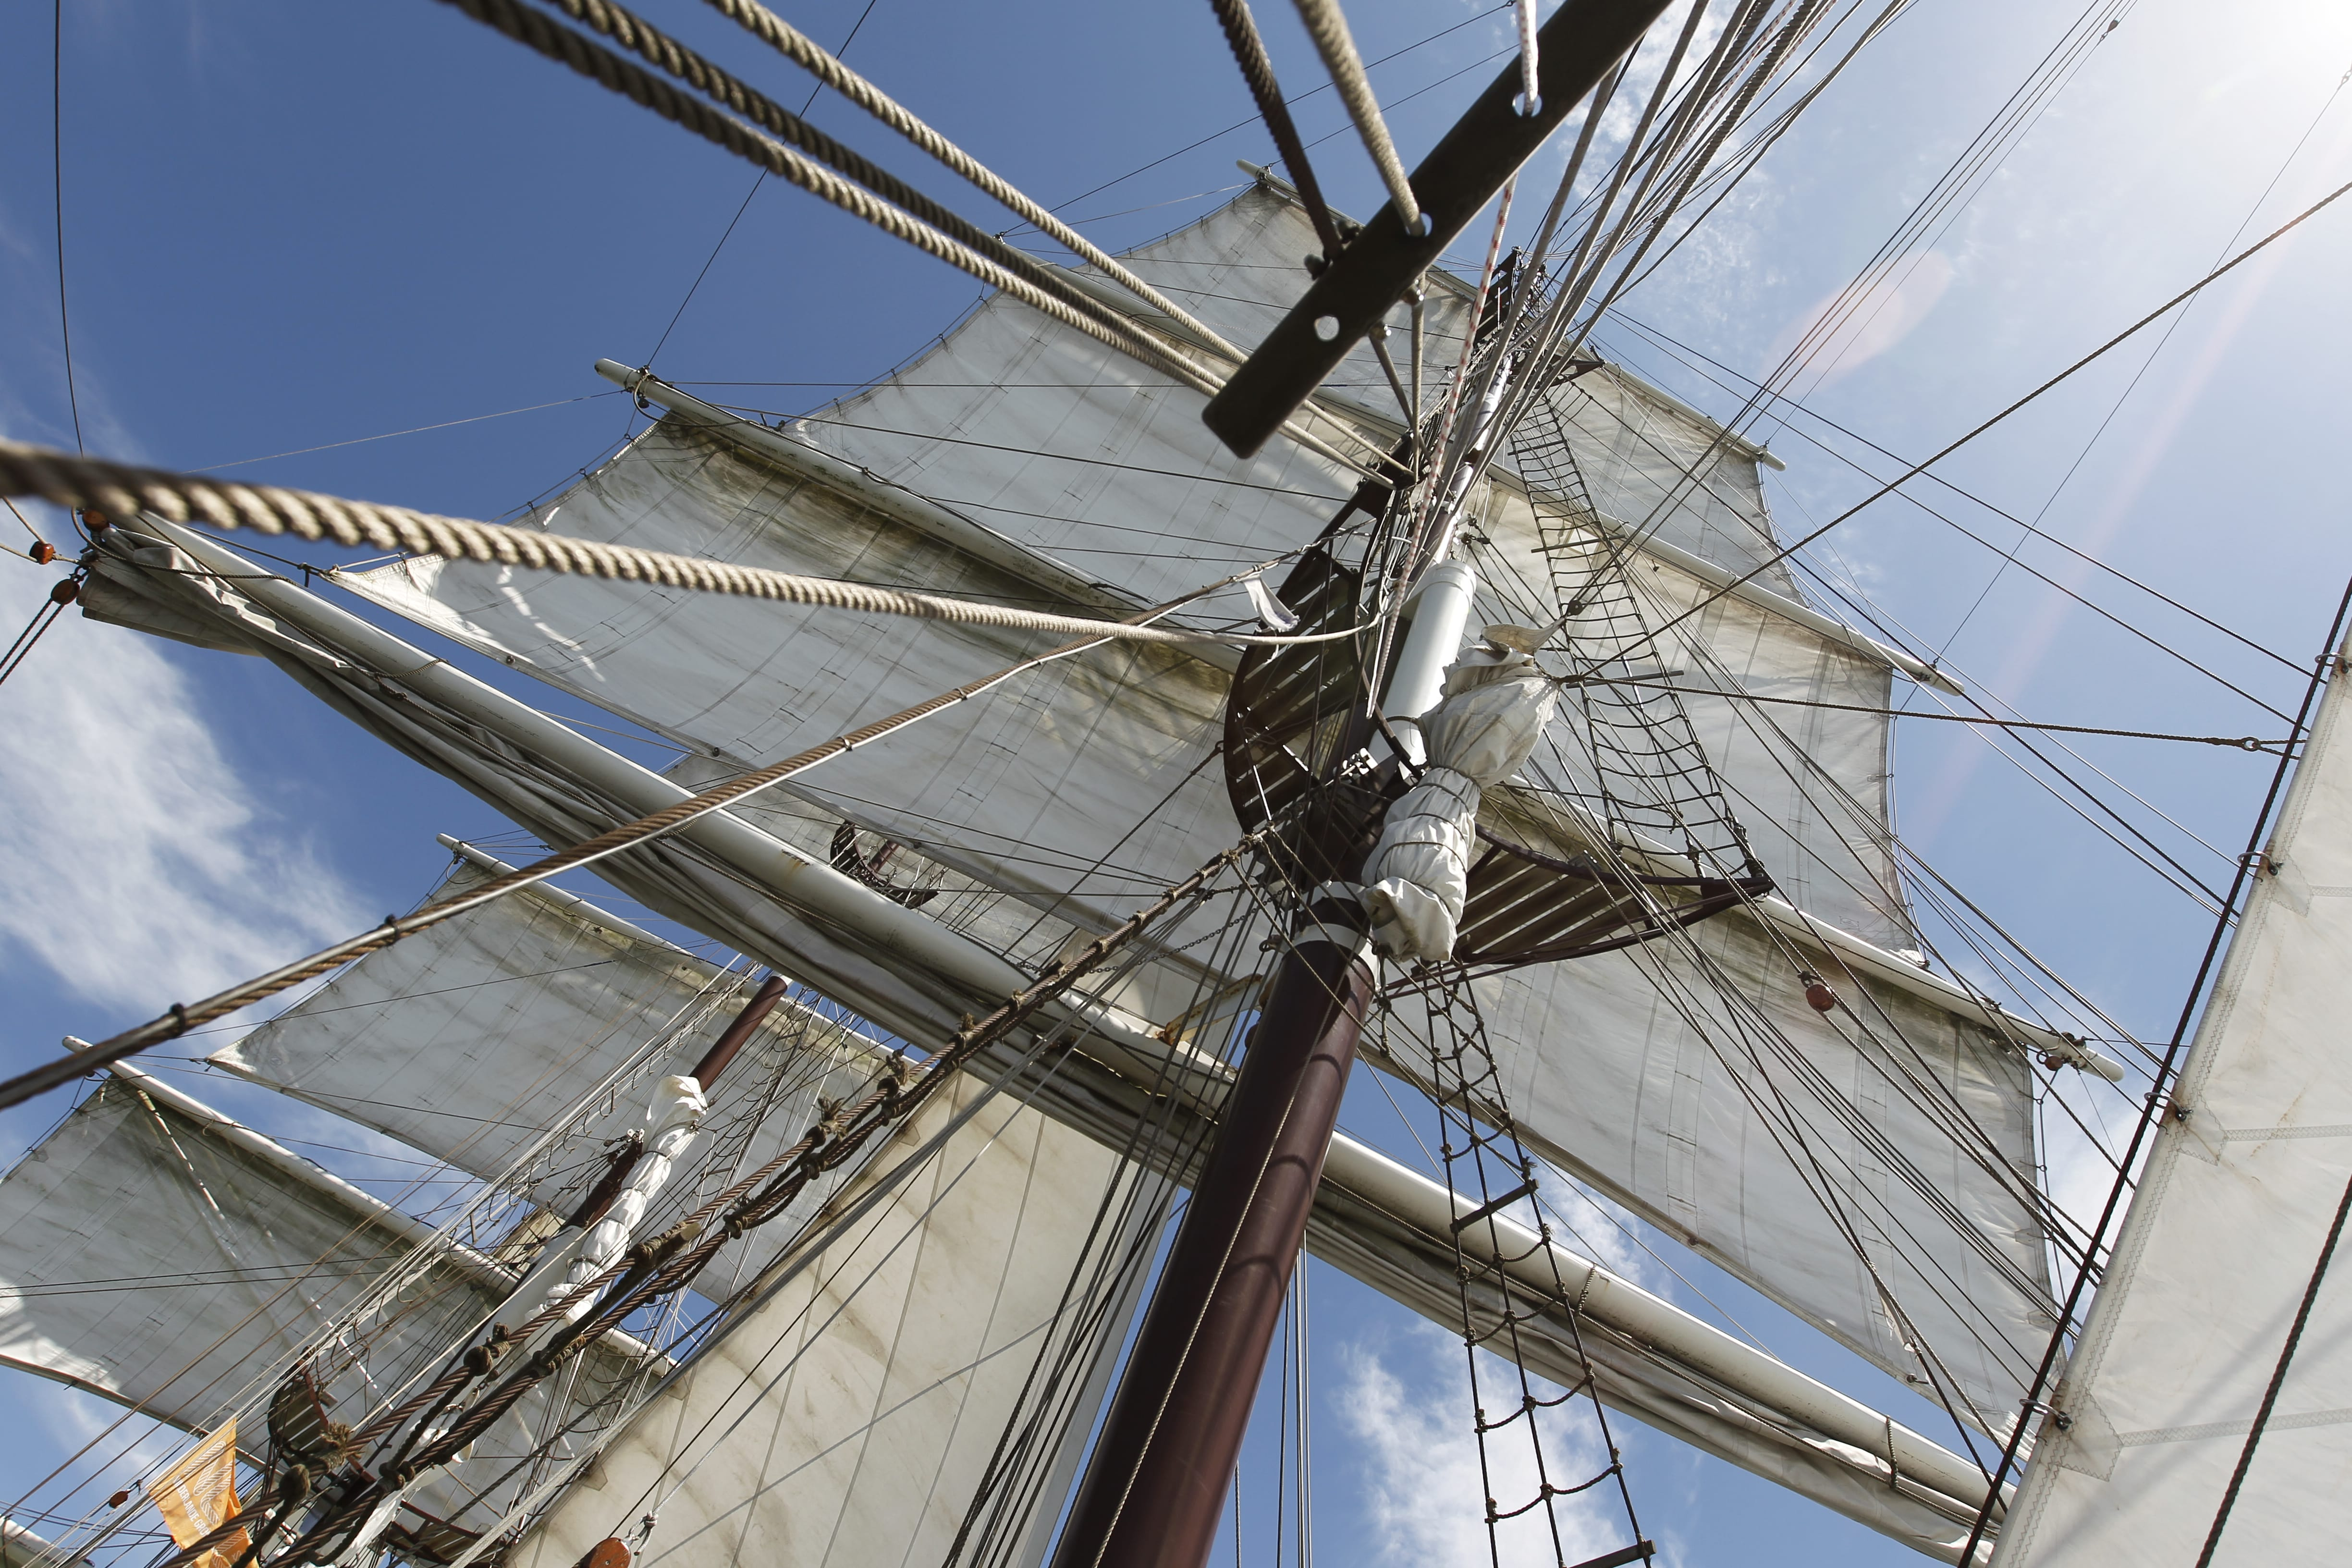 Mast, sails and ropes from Bark Artemis